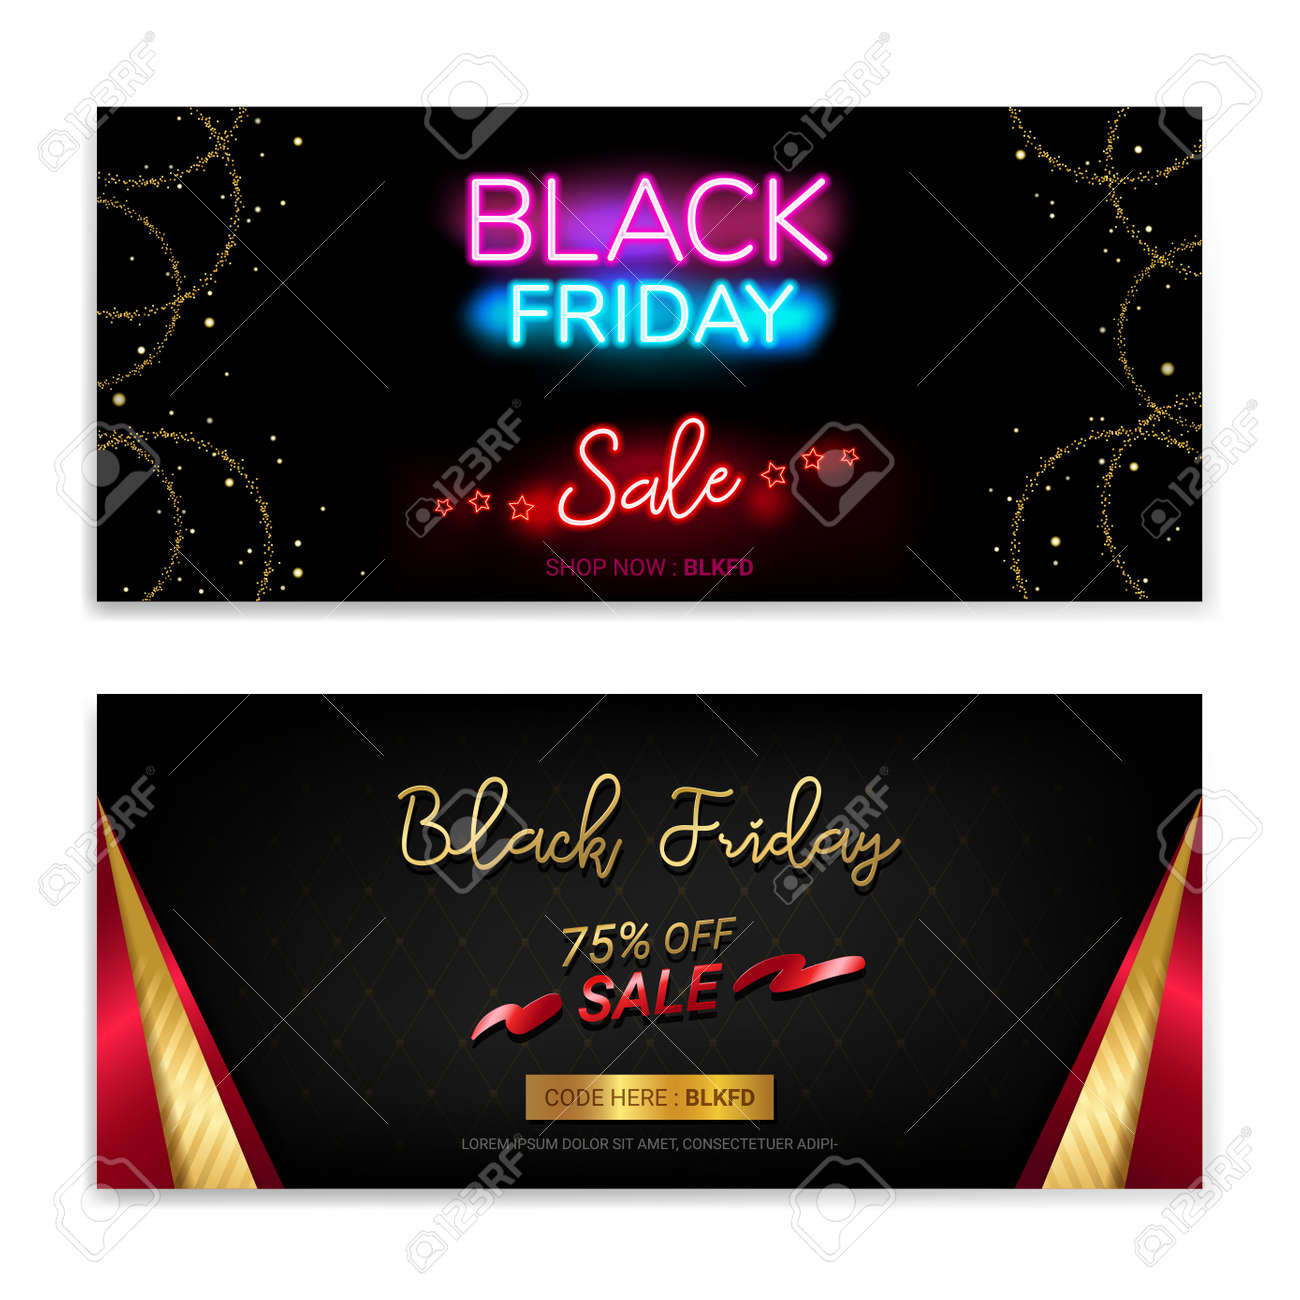 Black Friday Sales gift voucher or banner background in neon theme - 160158682